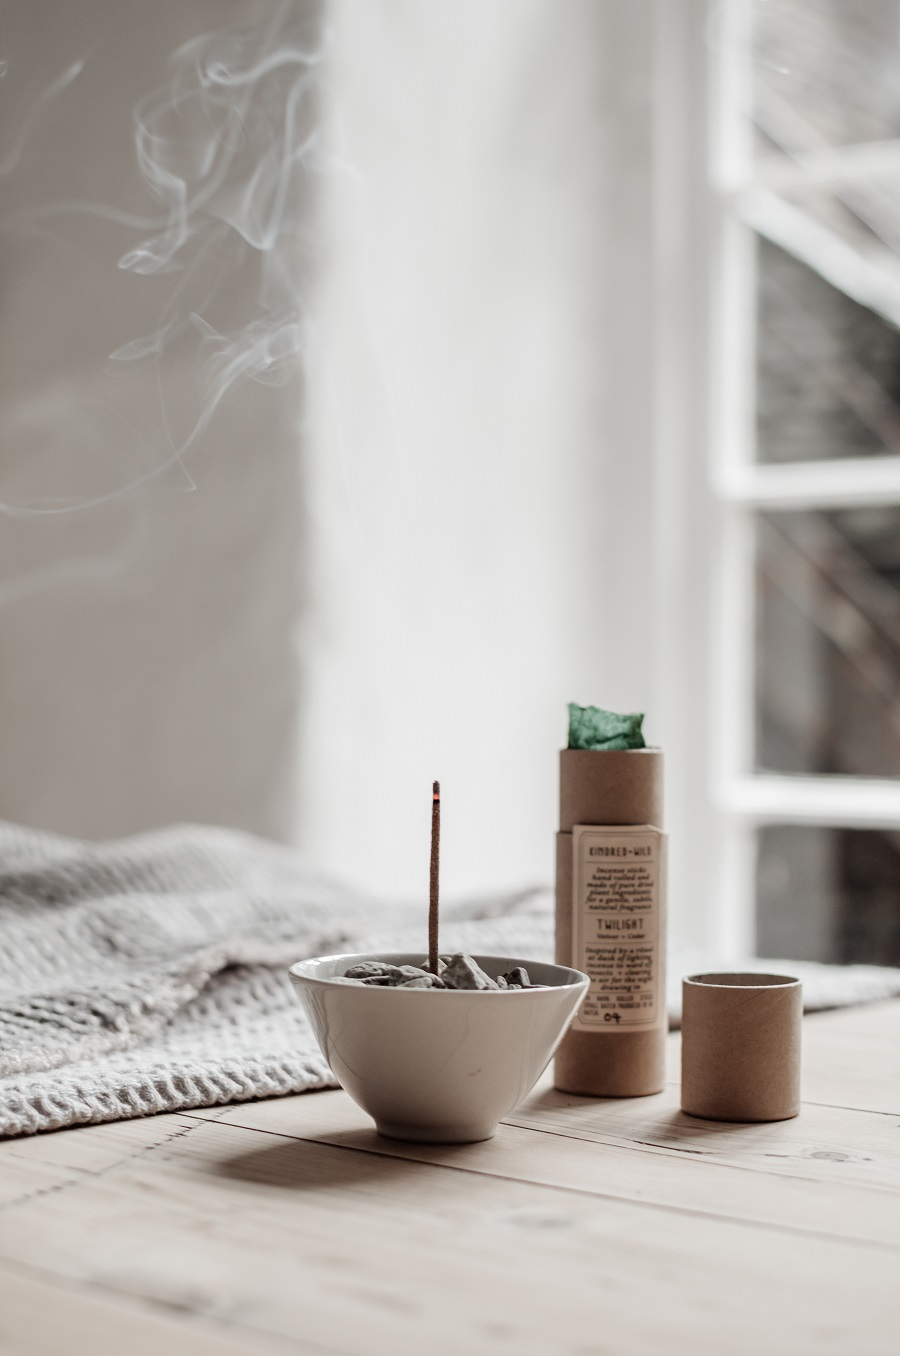 Introducting Firera Home- Environmentally Friendly Products for a Conscious Home